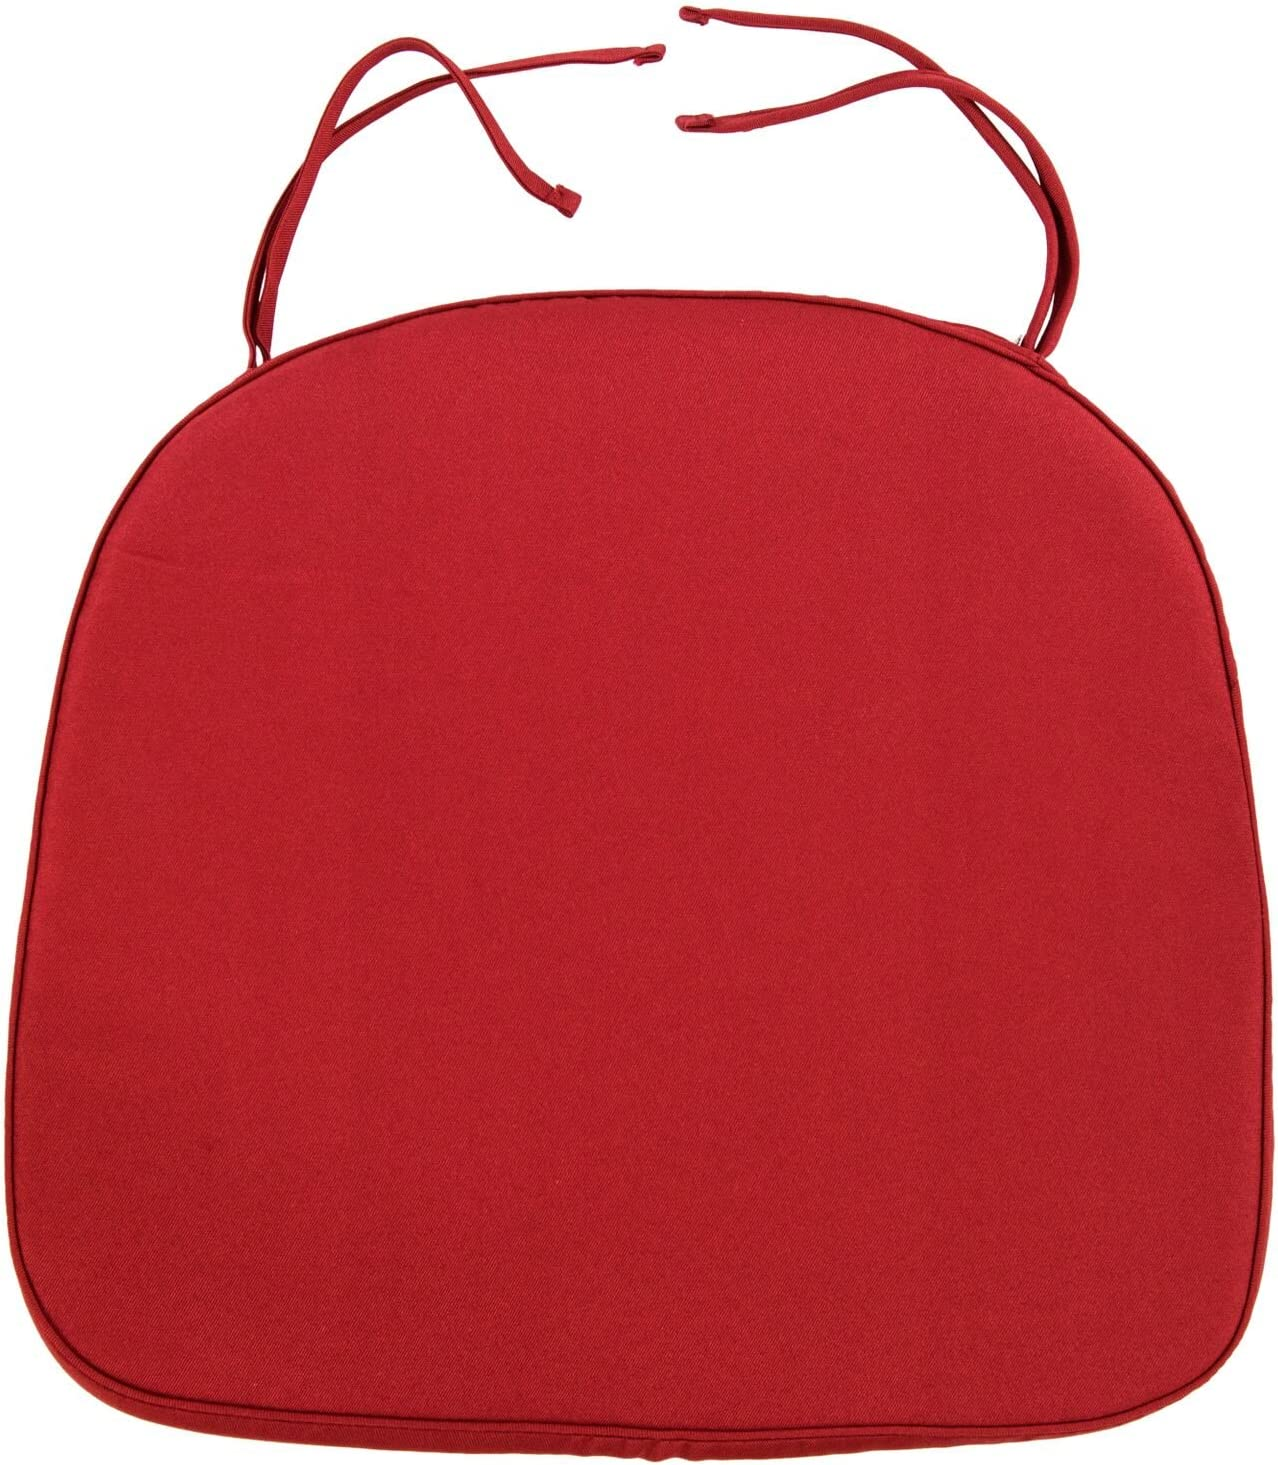 LeisureMod Charlotte Mall Modern Dining Max 61% OFF Chair Pad Cushion Red